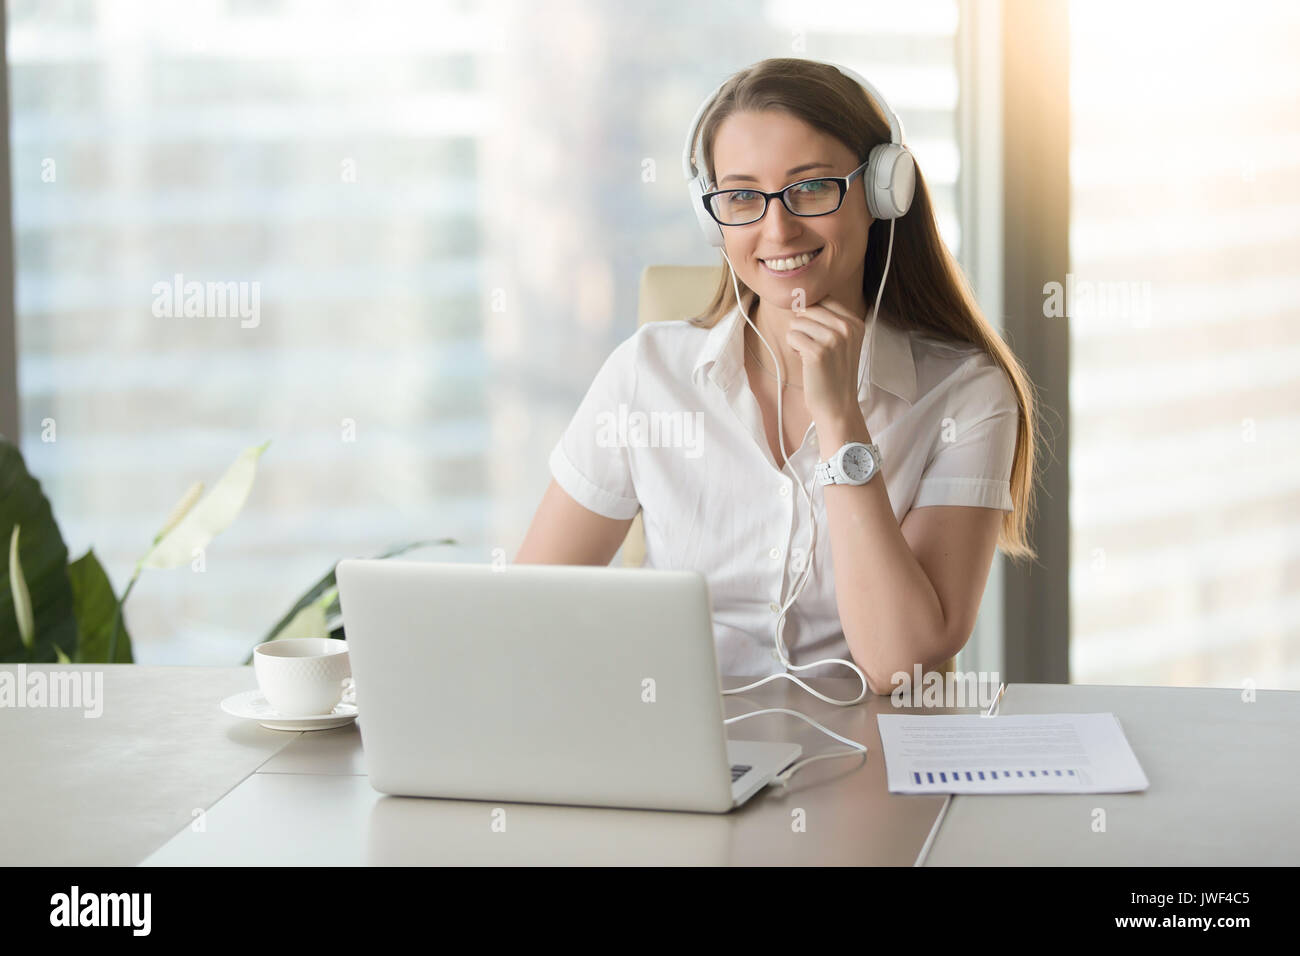 Smiling businesswoman wearing headphones with laptop posing at w - Stock Image